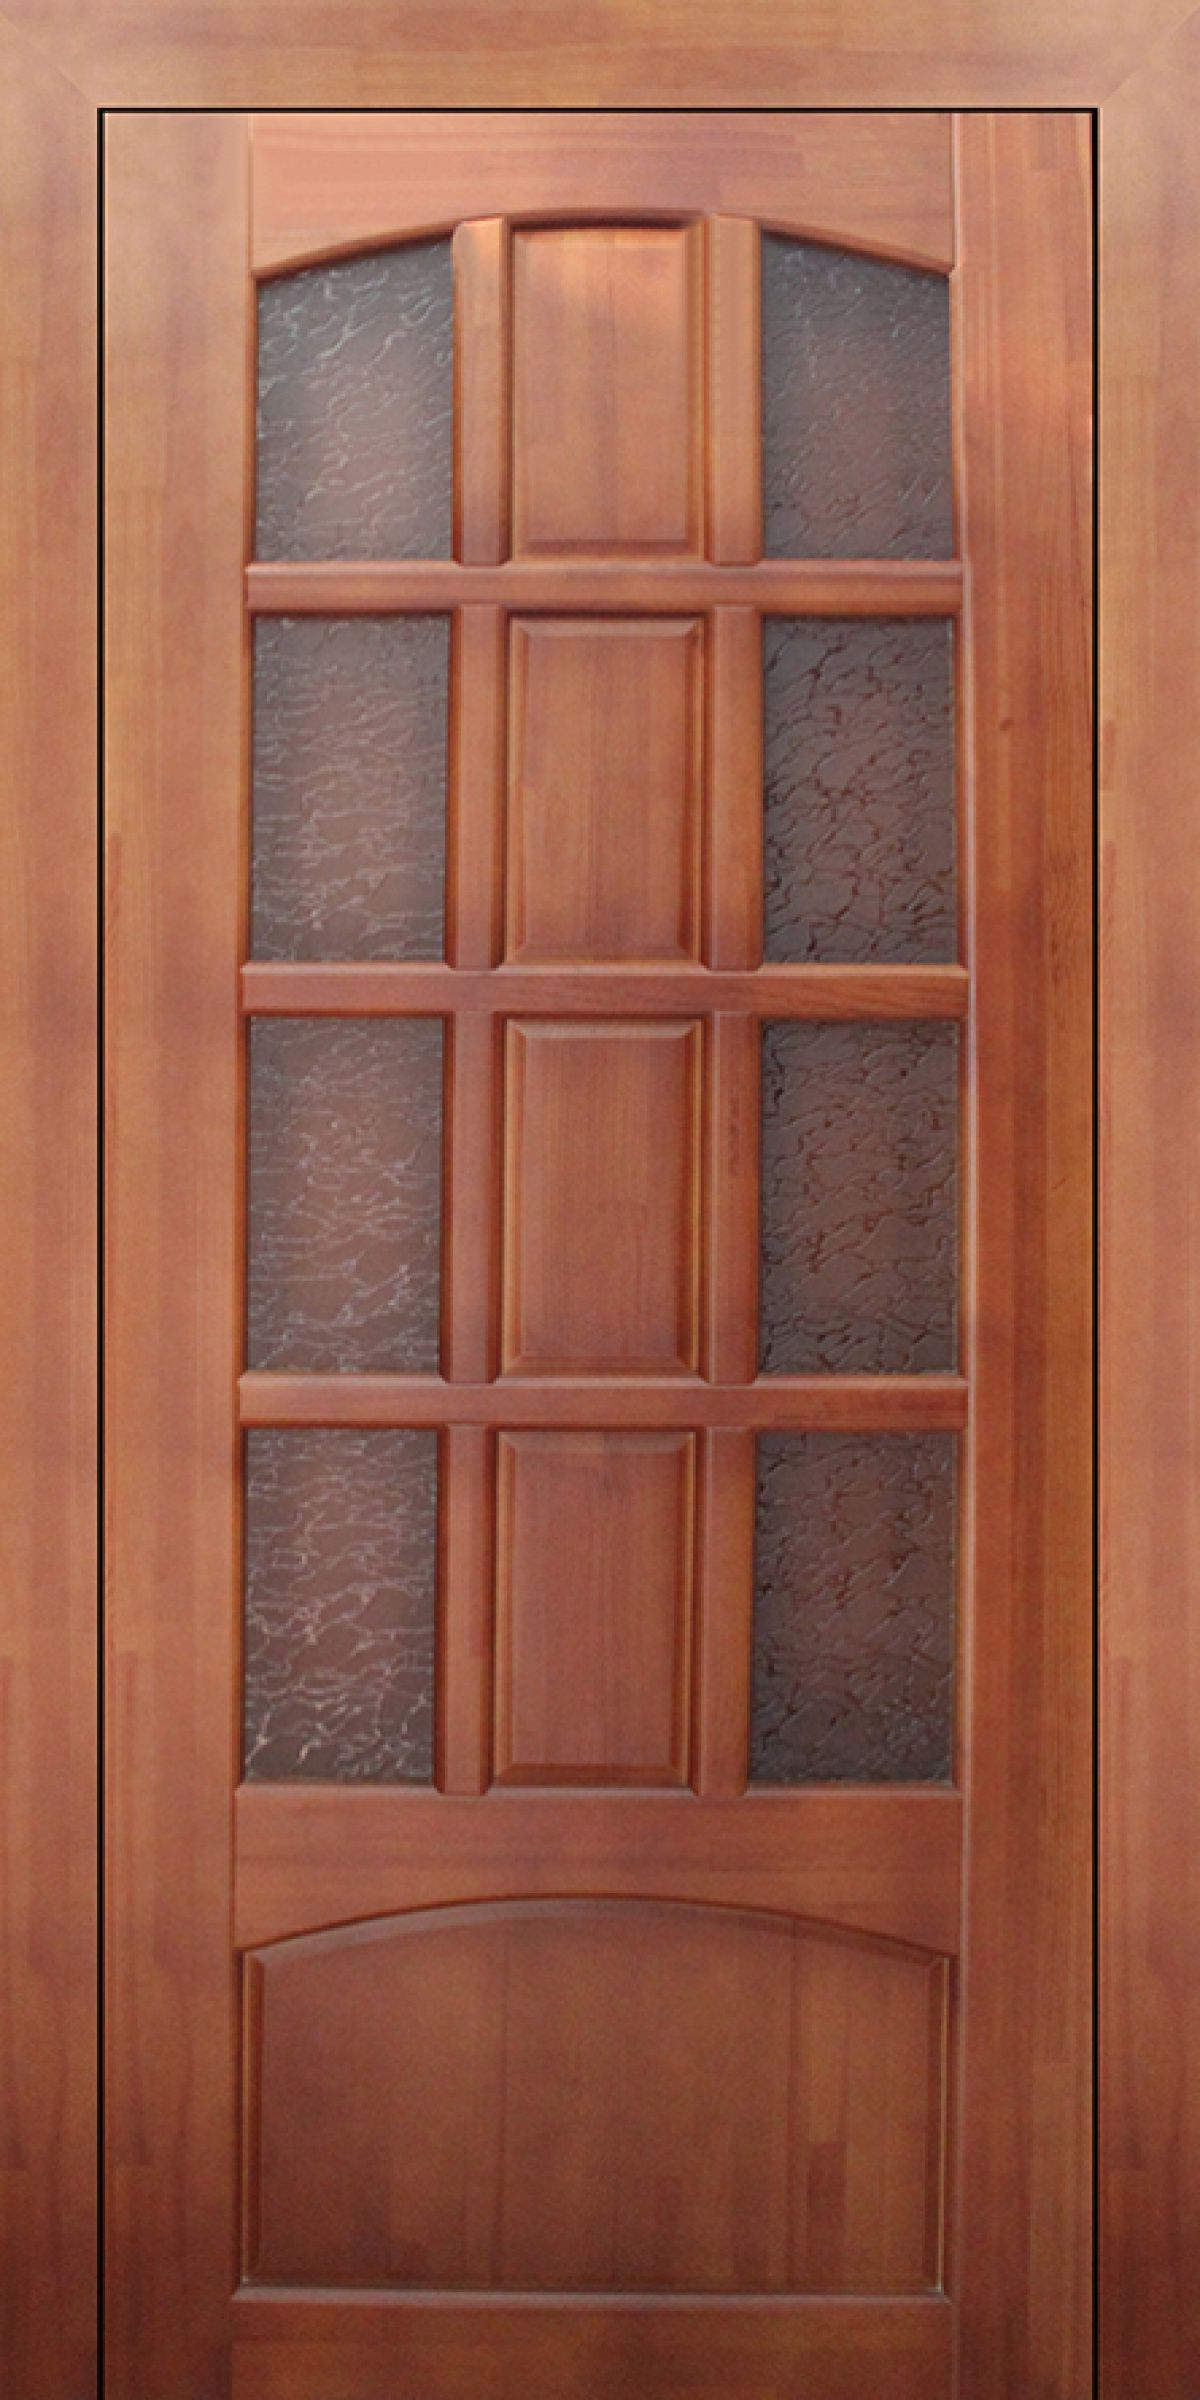 Large wooden pocket interior doors and blue walls in the room for Solid entrance doors